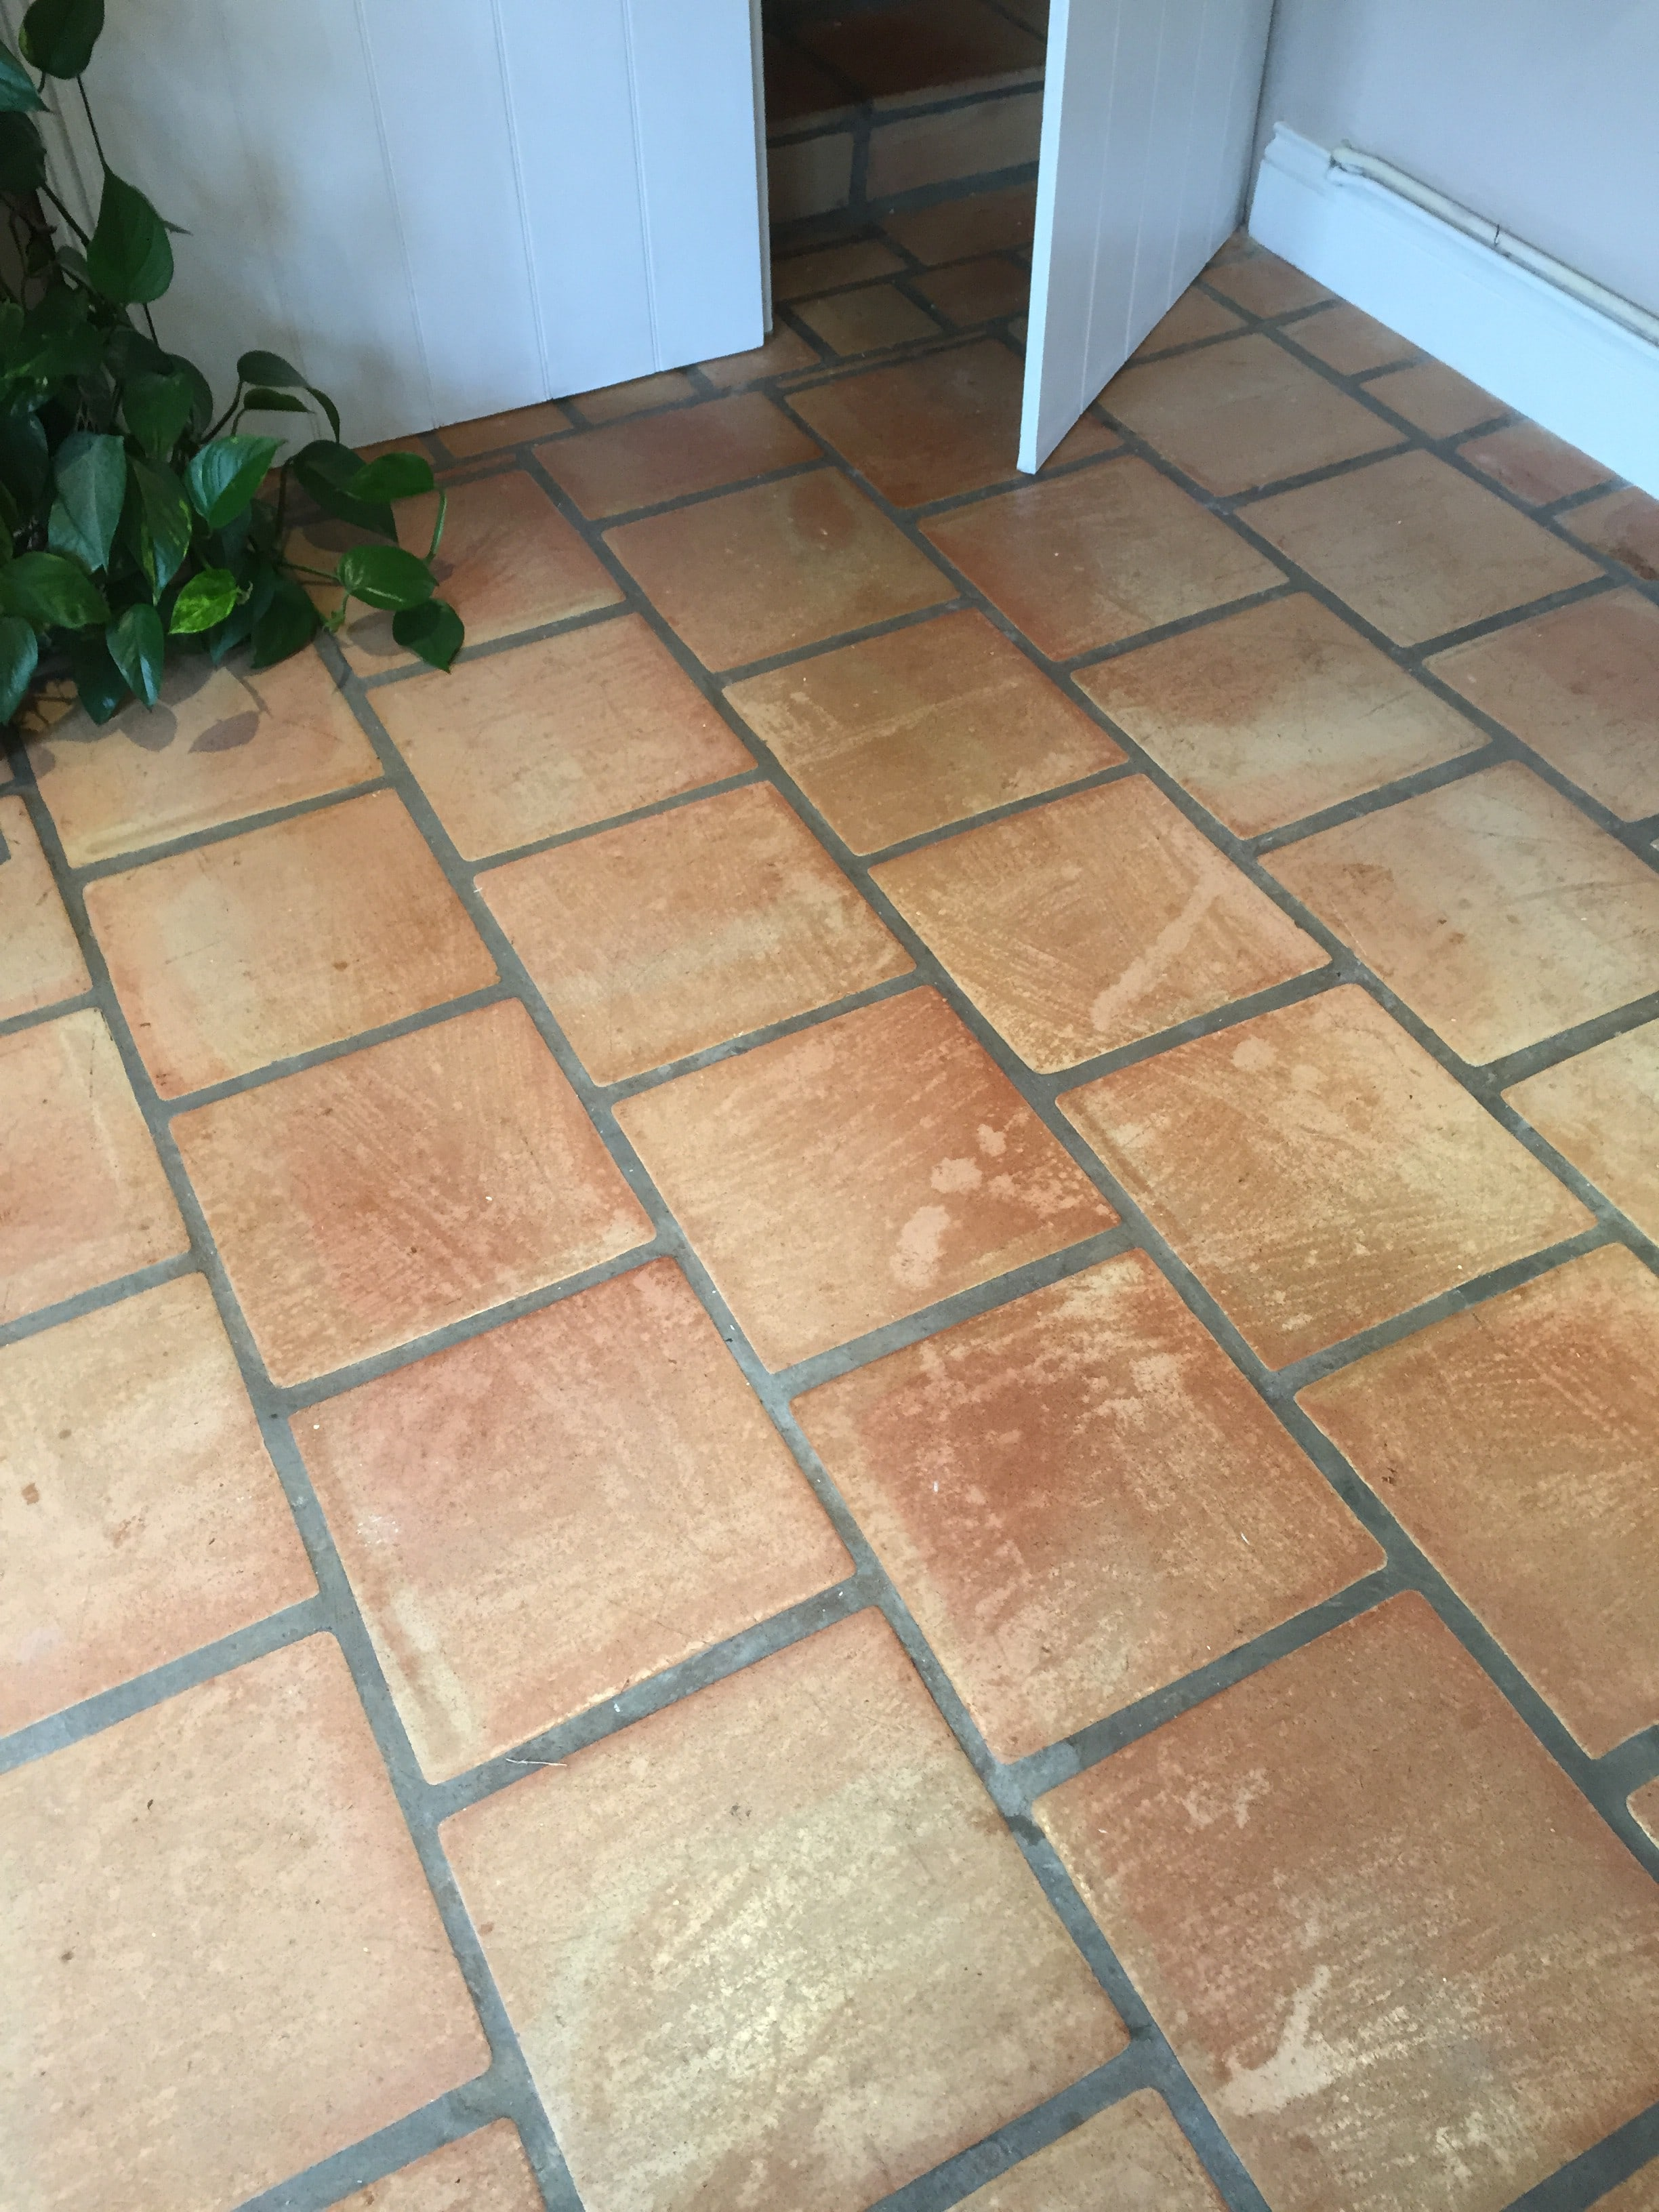 Terracotta Tiles Damaged By Bleach Before Cleaning Crewkerne